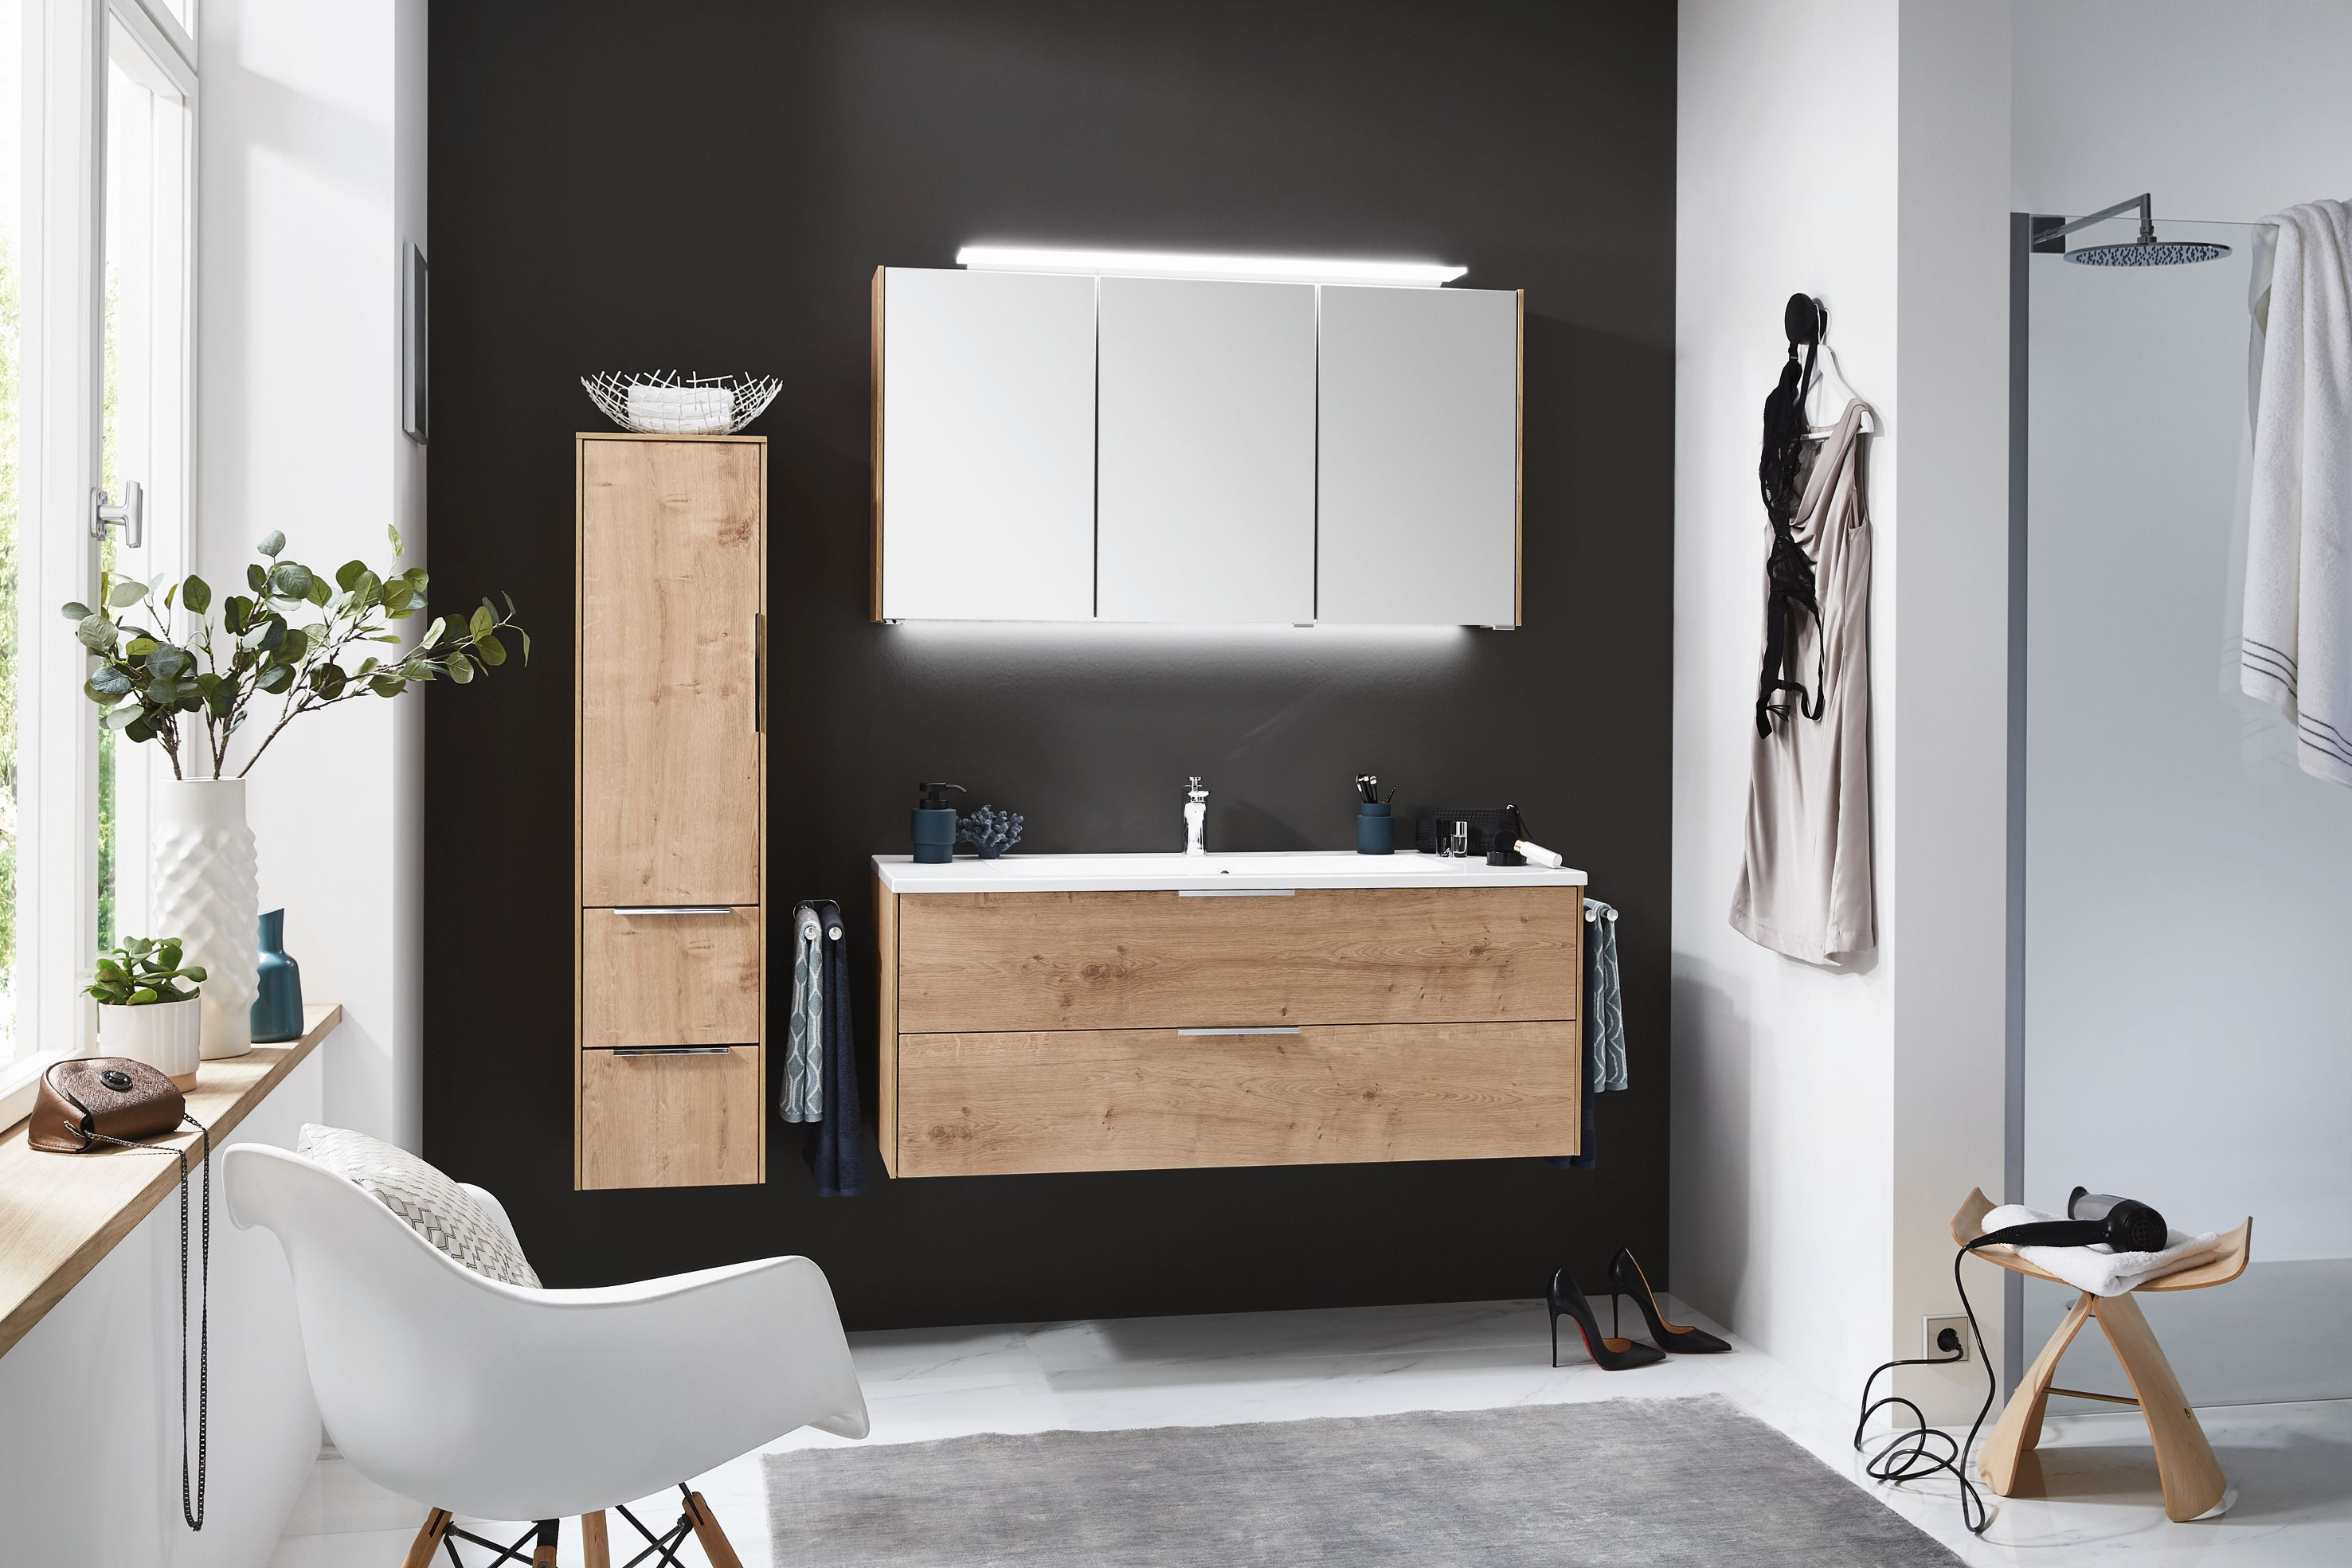 puris badm bel set 120 cm breit neuheit g nstig kaufen m bel universum. Black Bedroom Furniture Sets. Home Design Ideas